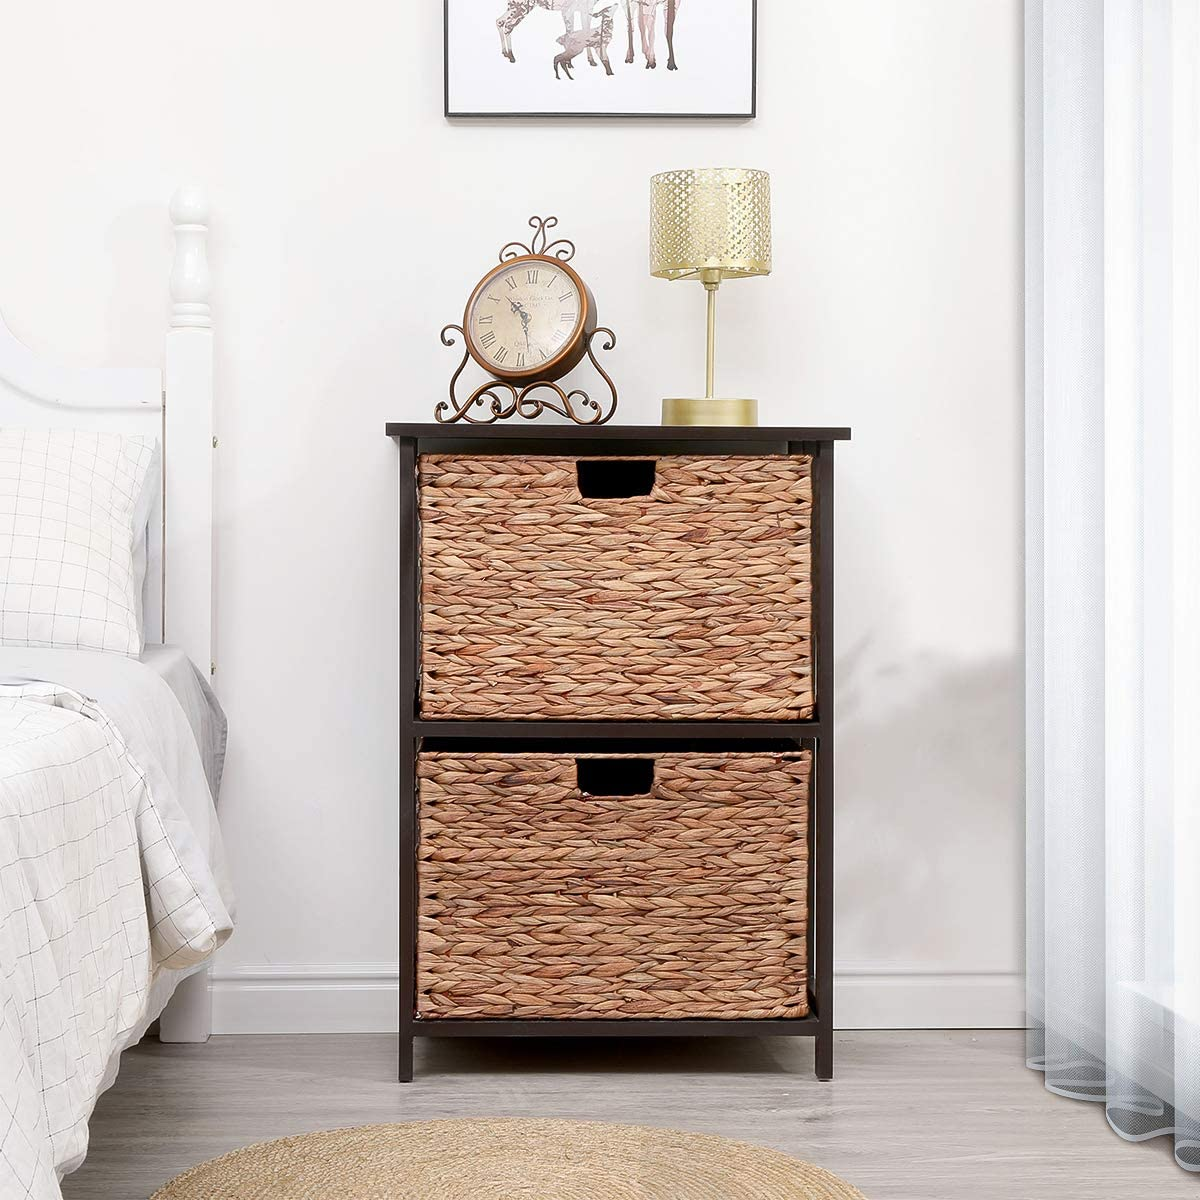 MELLCOM Storage Cabinet Retro Style with Complete Free Free shipping / New Shipping Dr Chest Wood 2